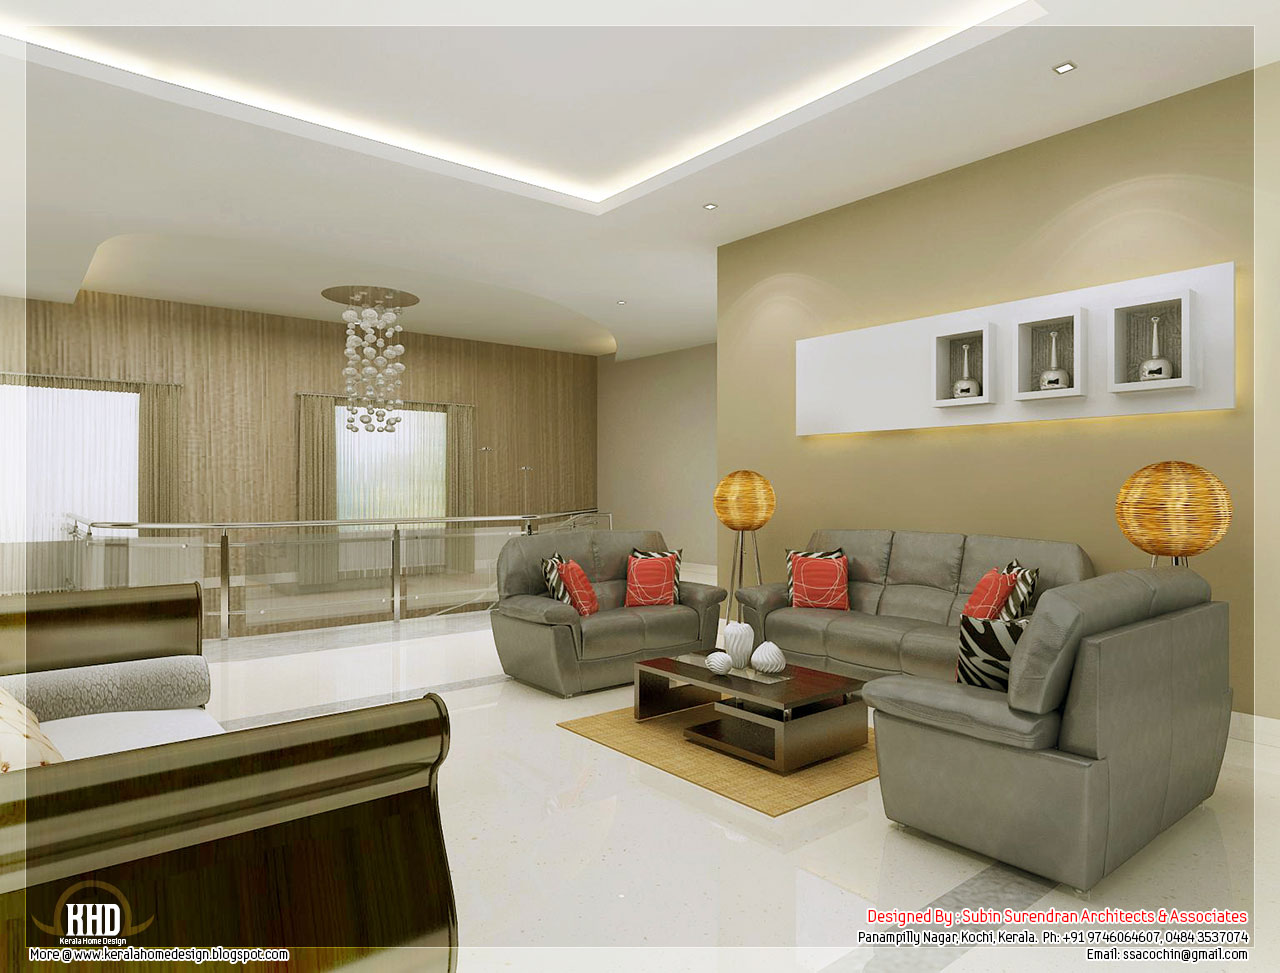 Awesome 3d interior renderings kerala home design and for Interior design of kitchen room in india